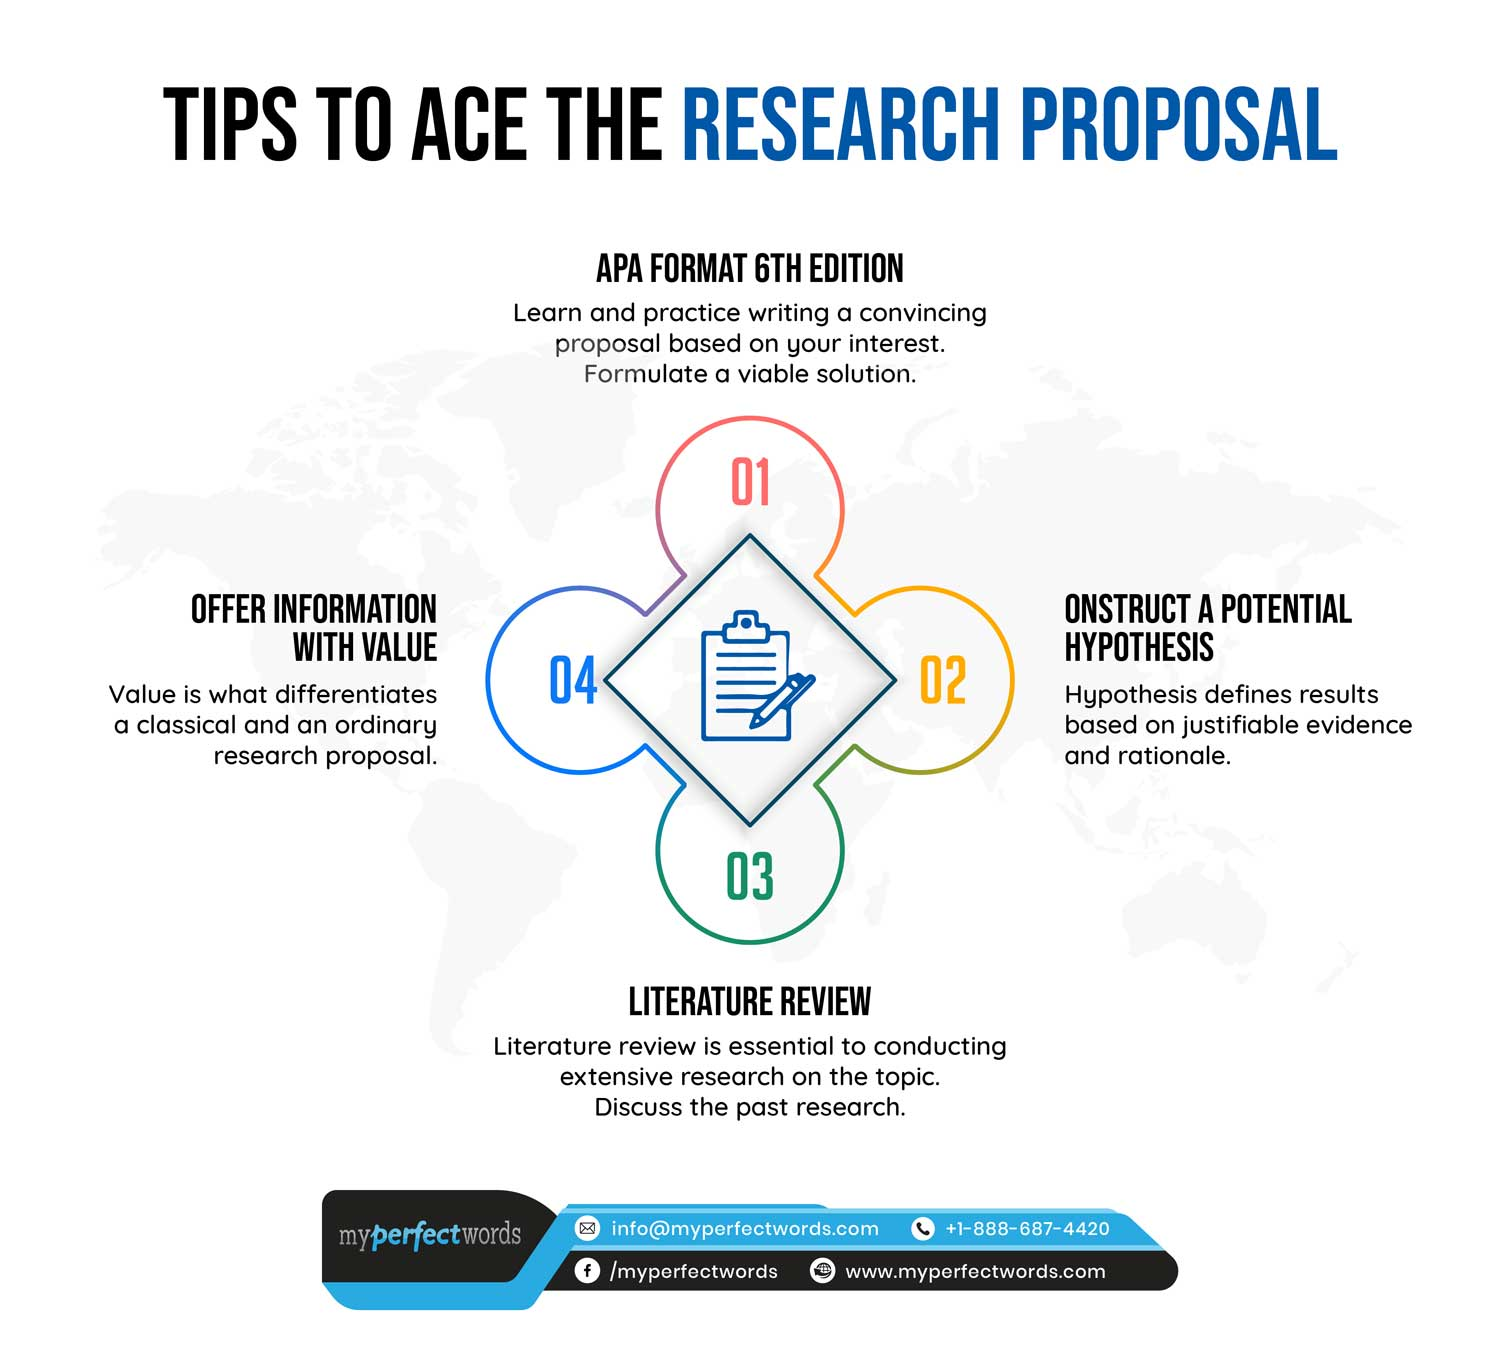 Crafting a winning research proposal